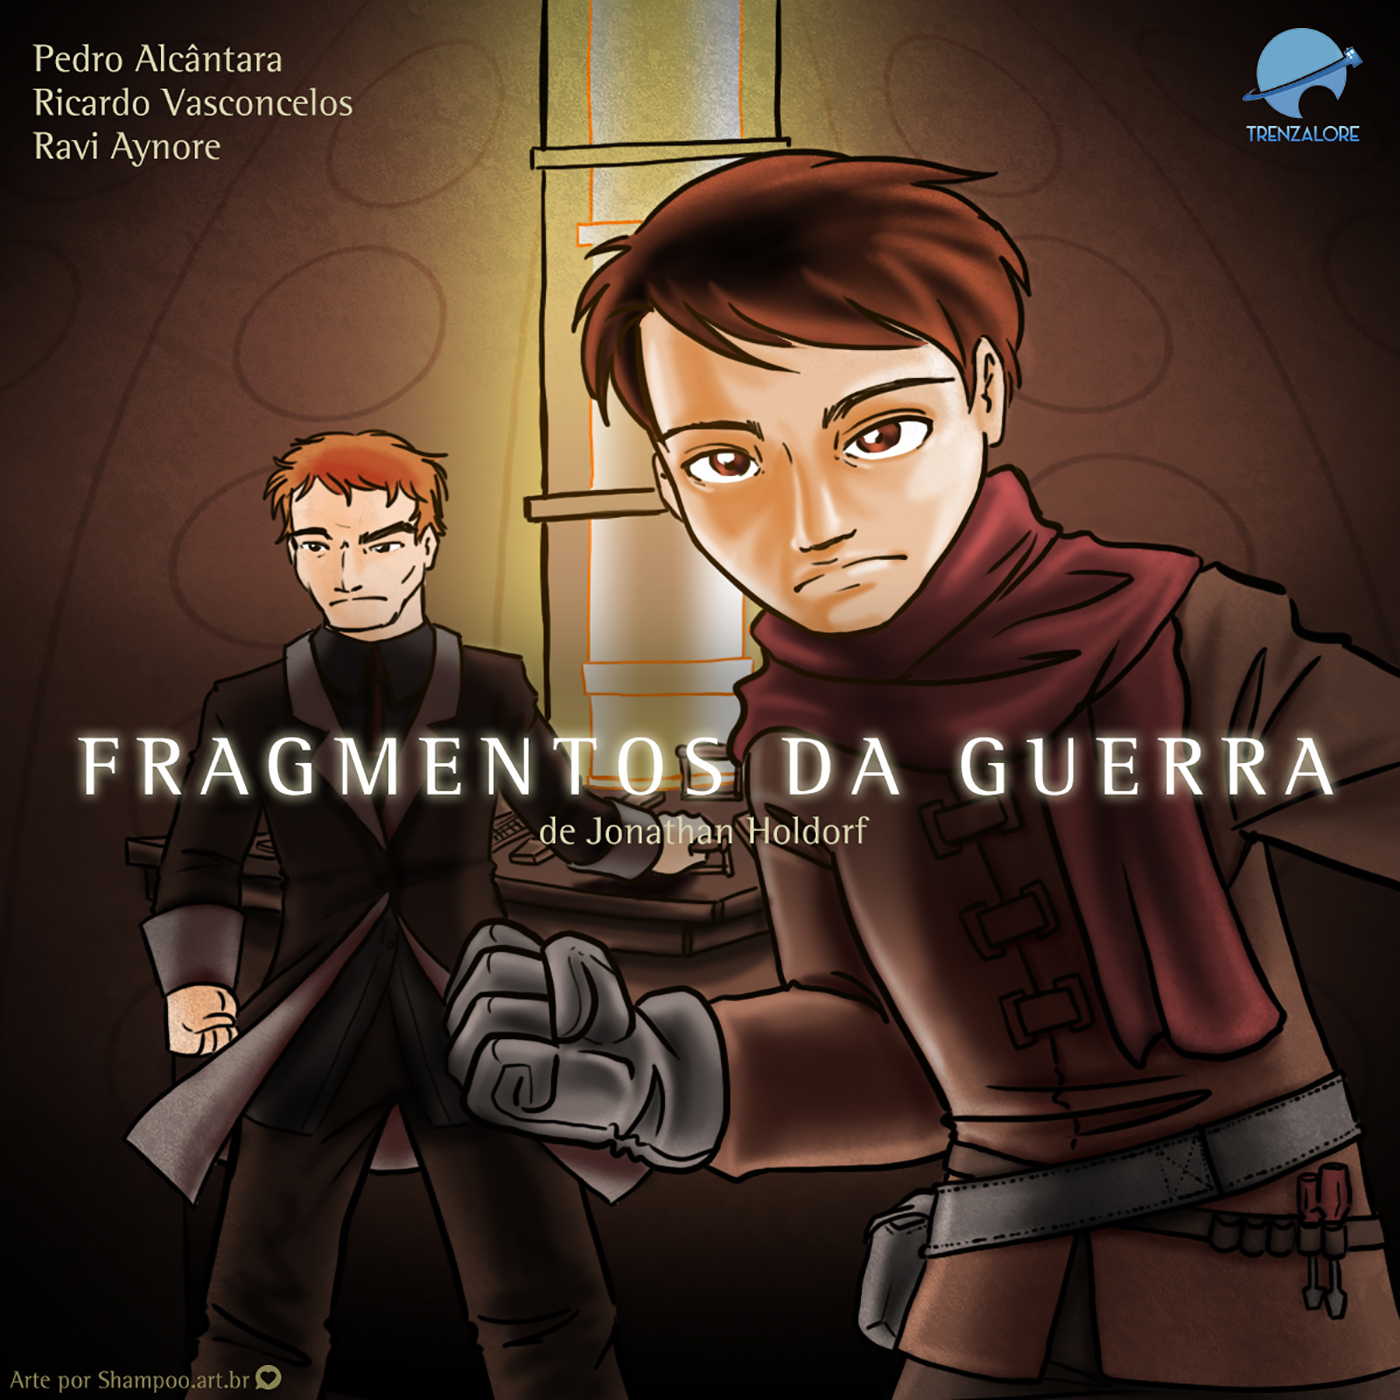 Fragmentos da Guerra - áudio-drama original de Doctor Who